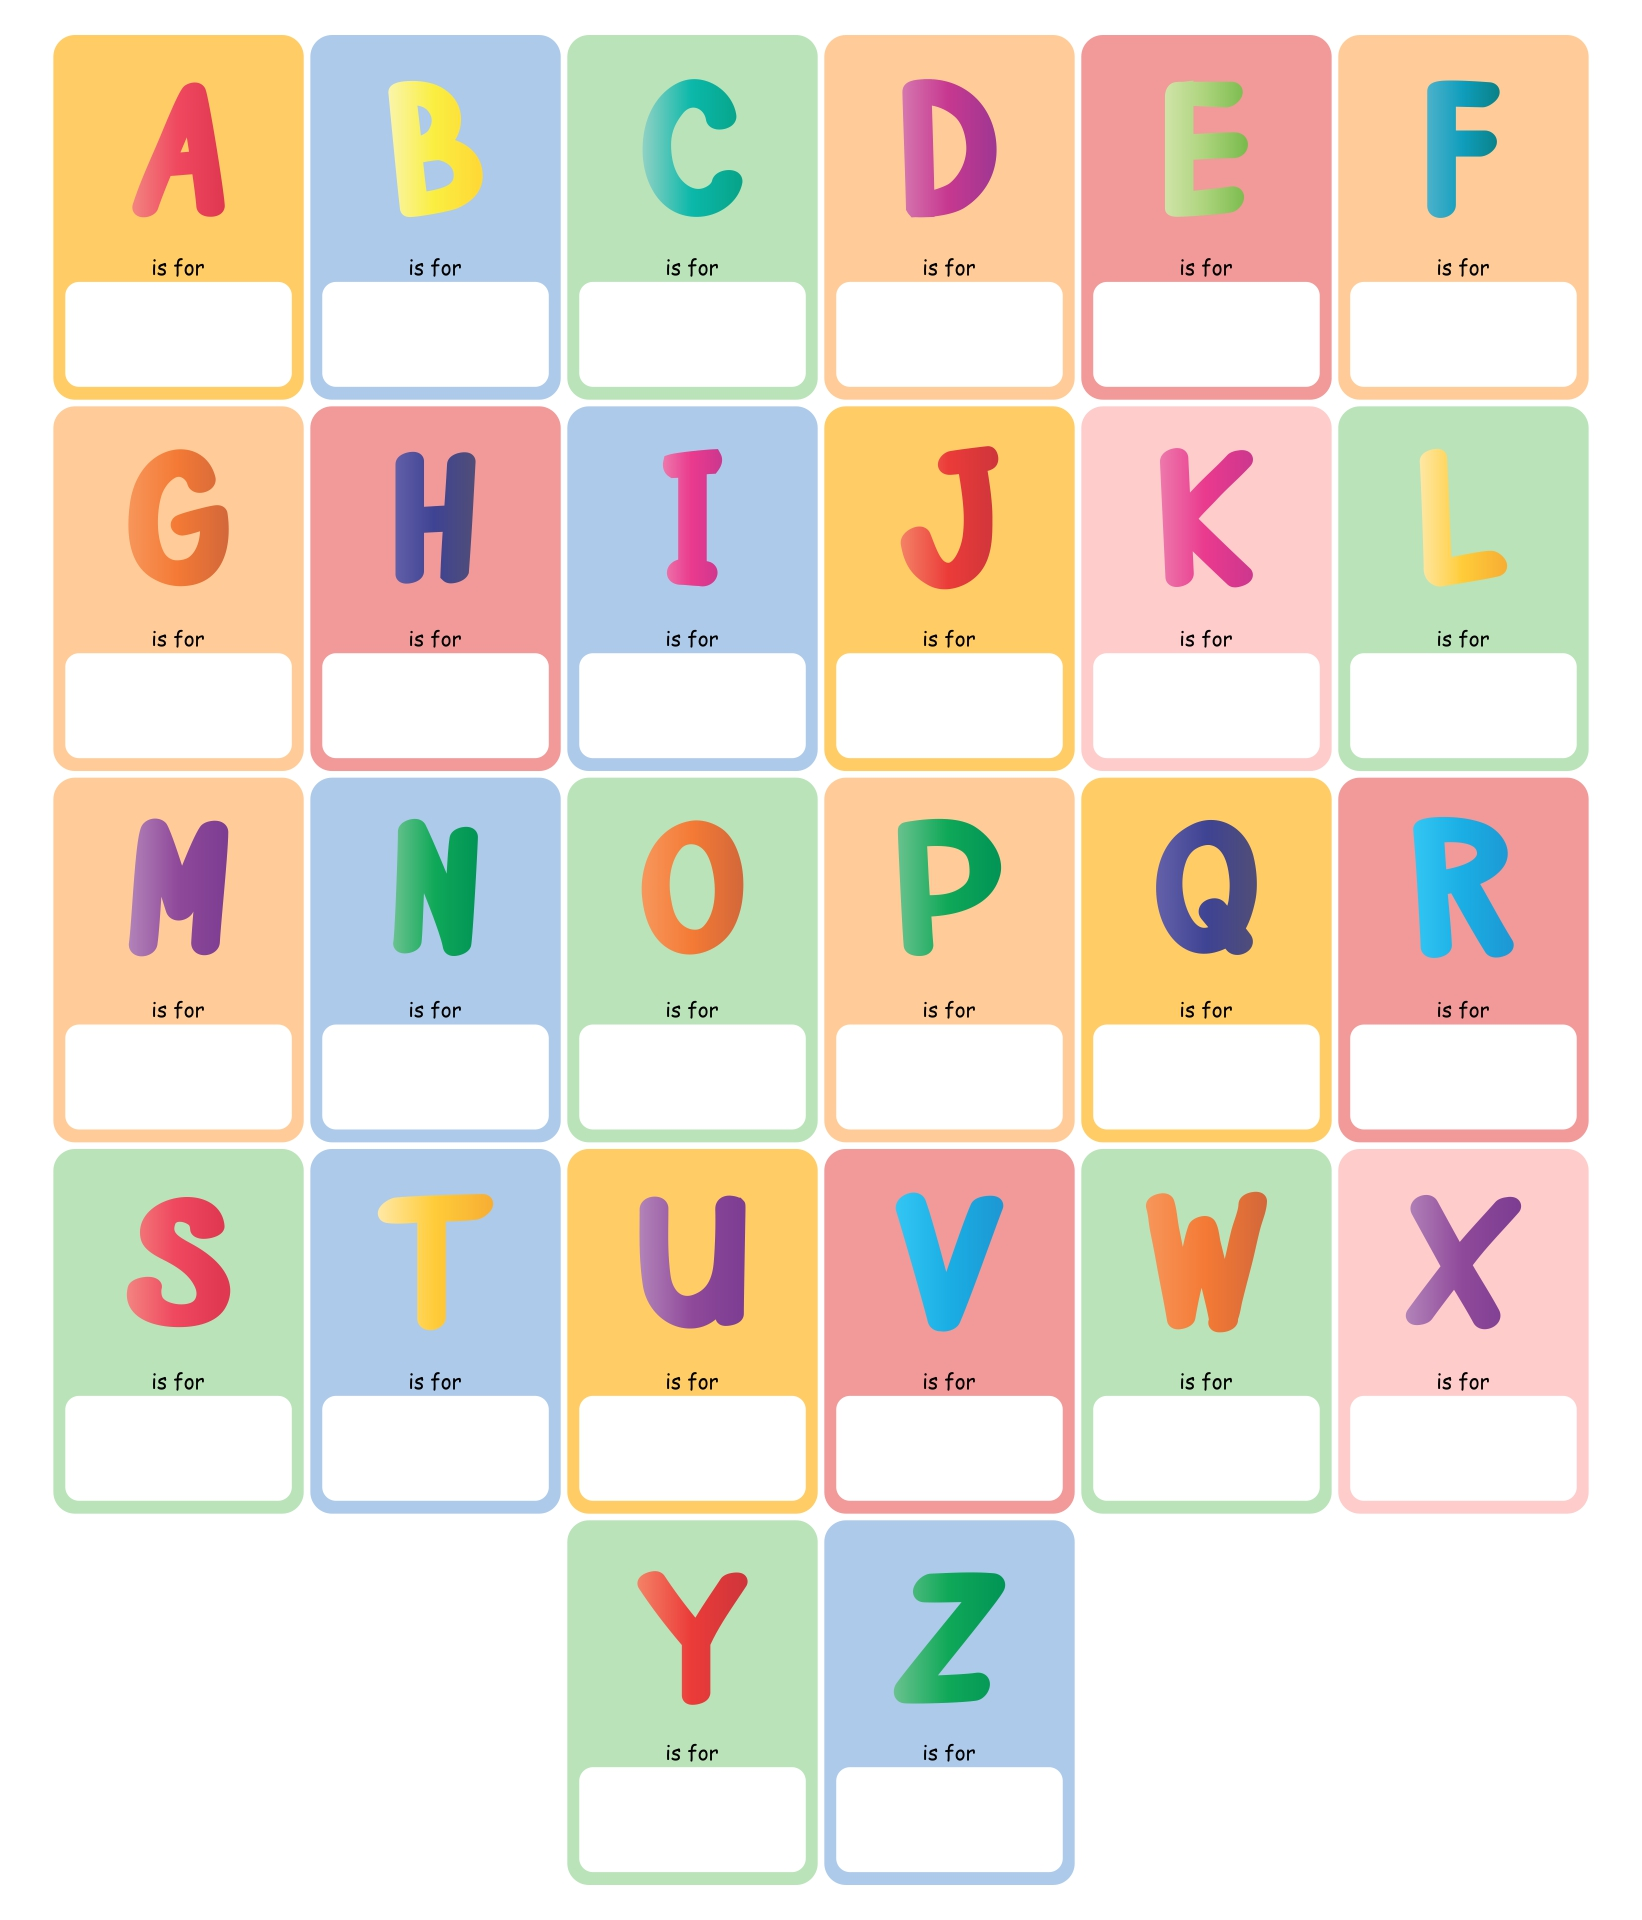 photo regarding Printable Abc Book Template known as Rar Descargar Printable Abc Guide Template. Cuppacocoa